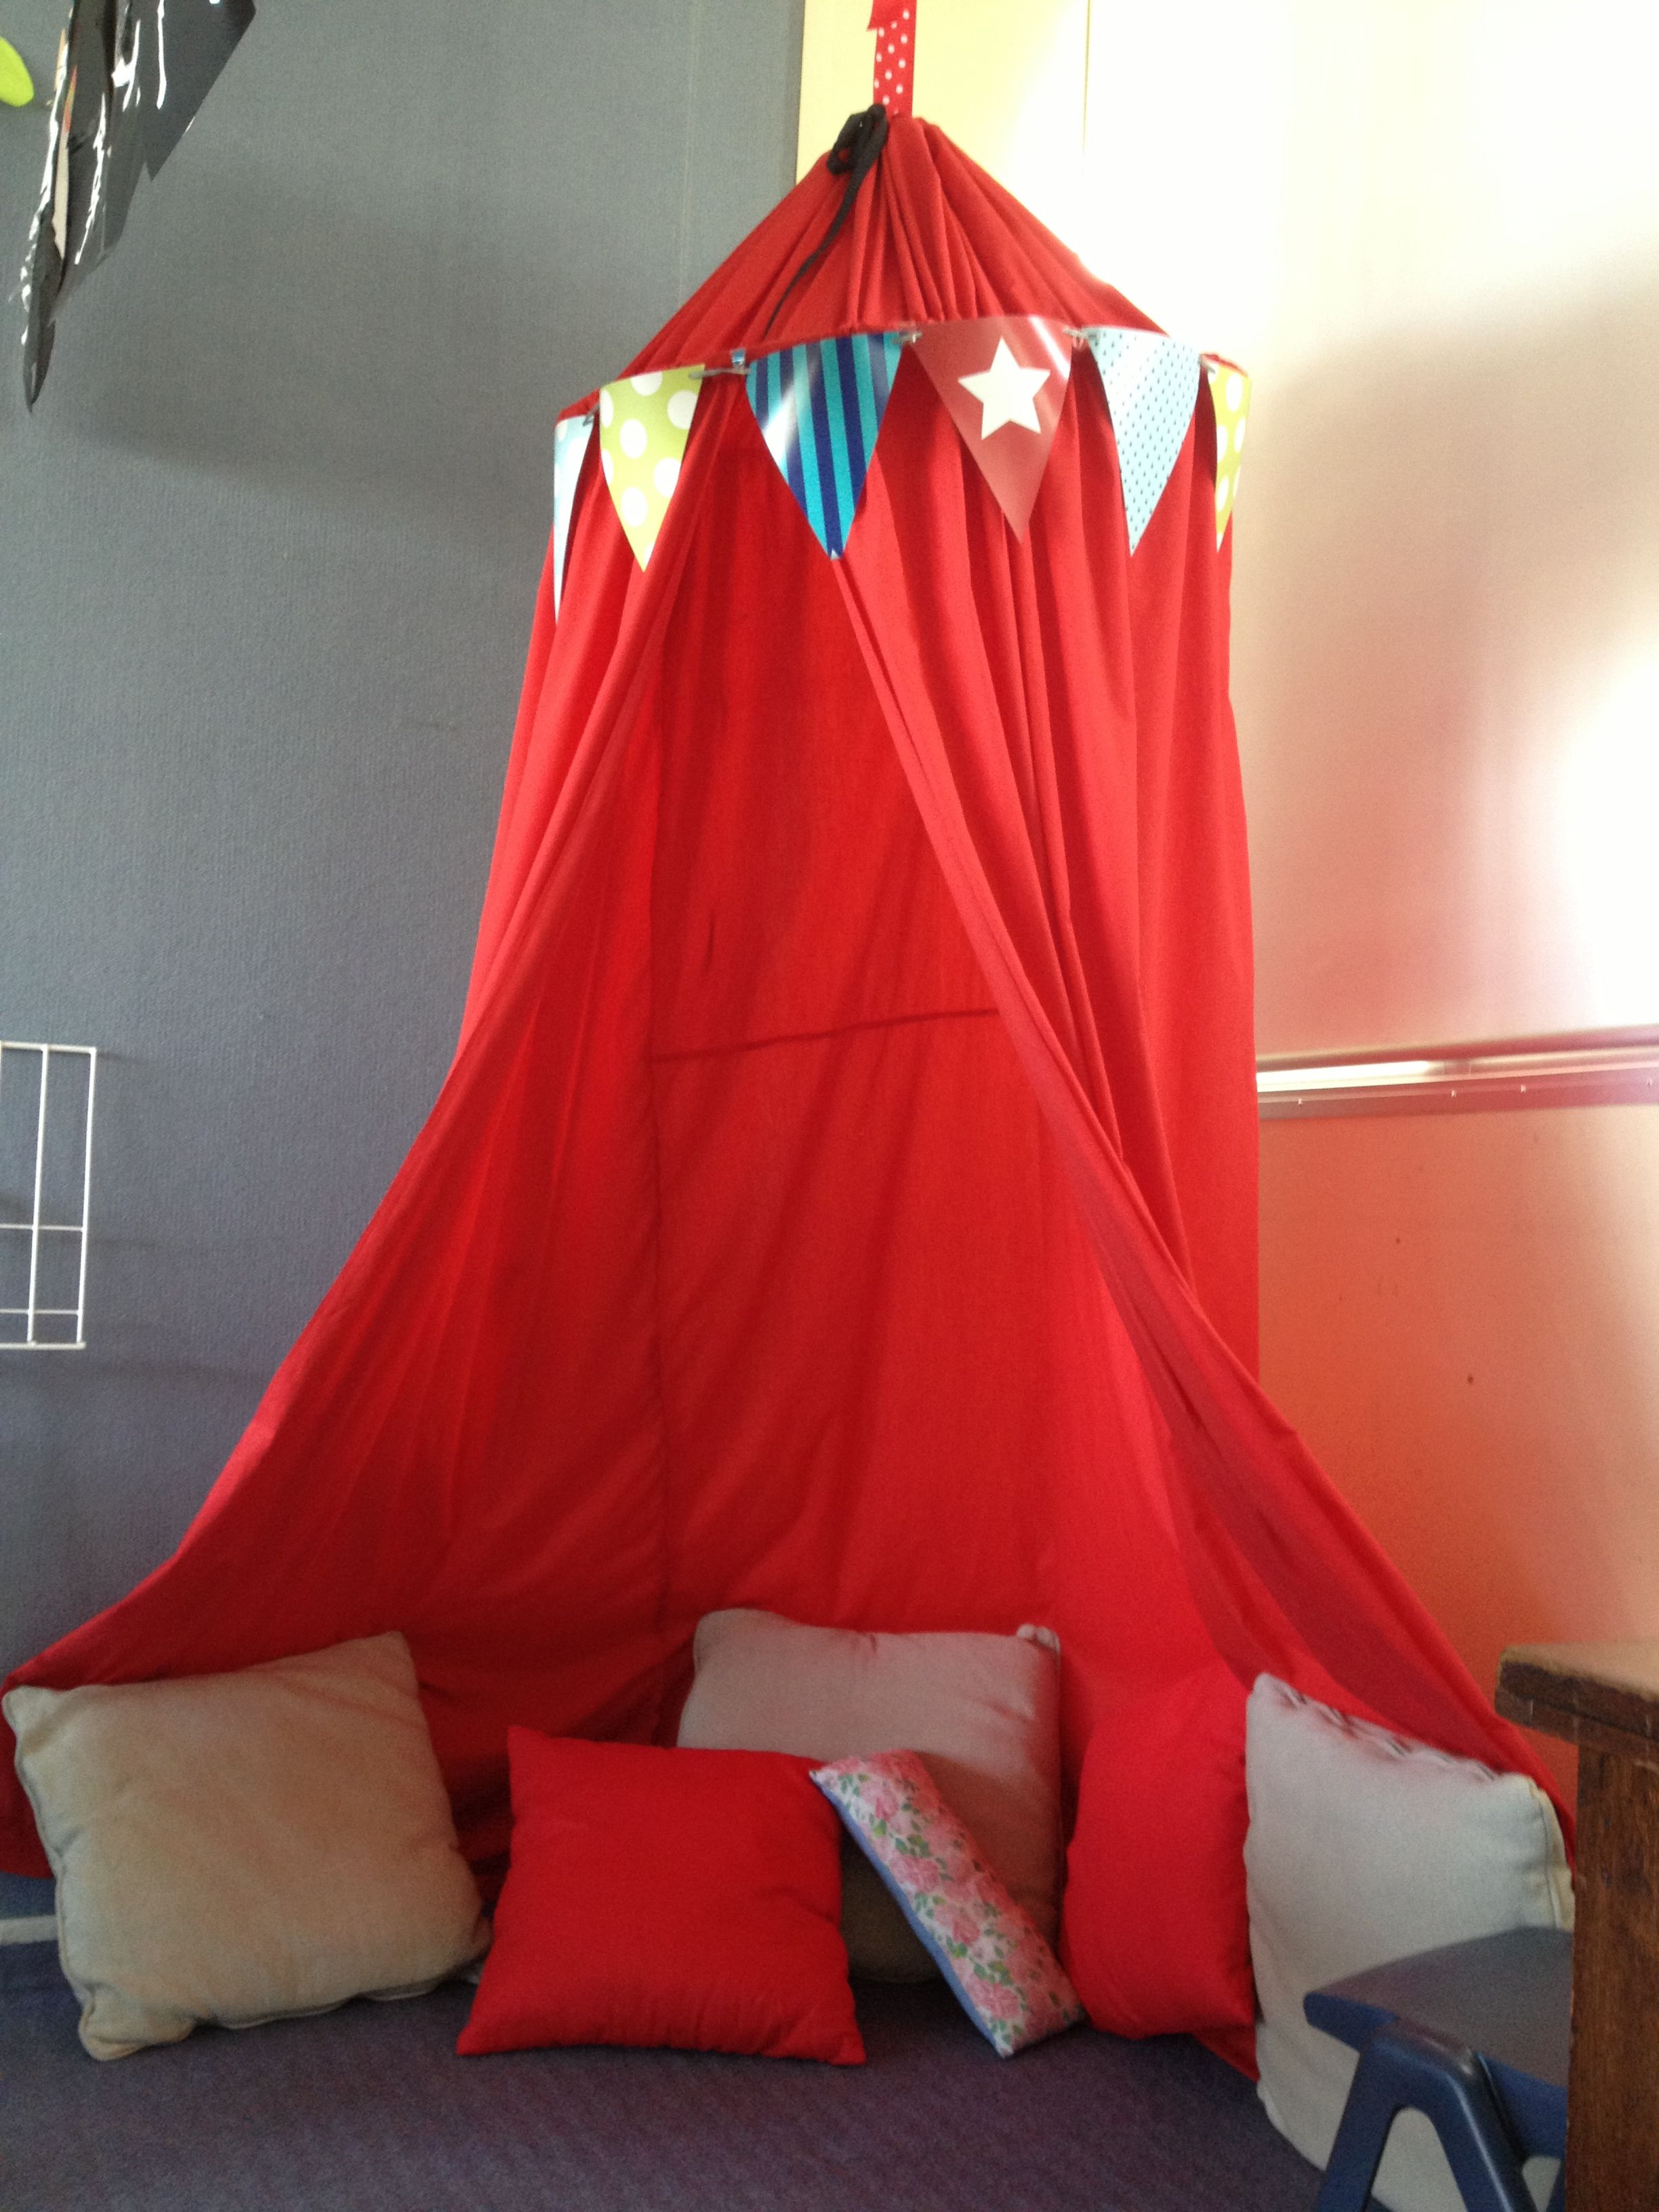 Reading Corner Idea Tent Canopy Classroom Stuff